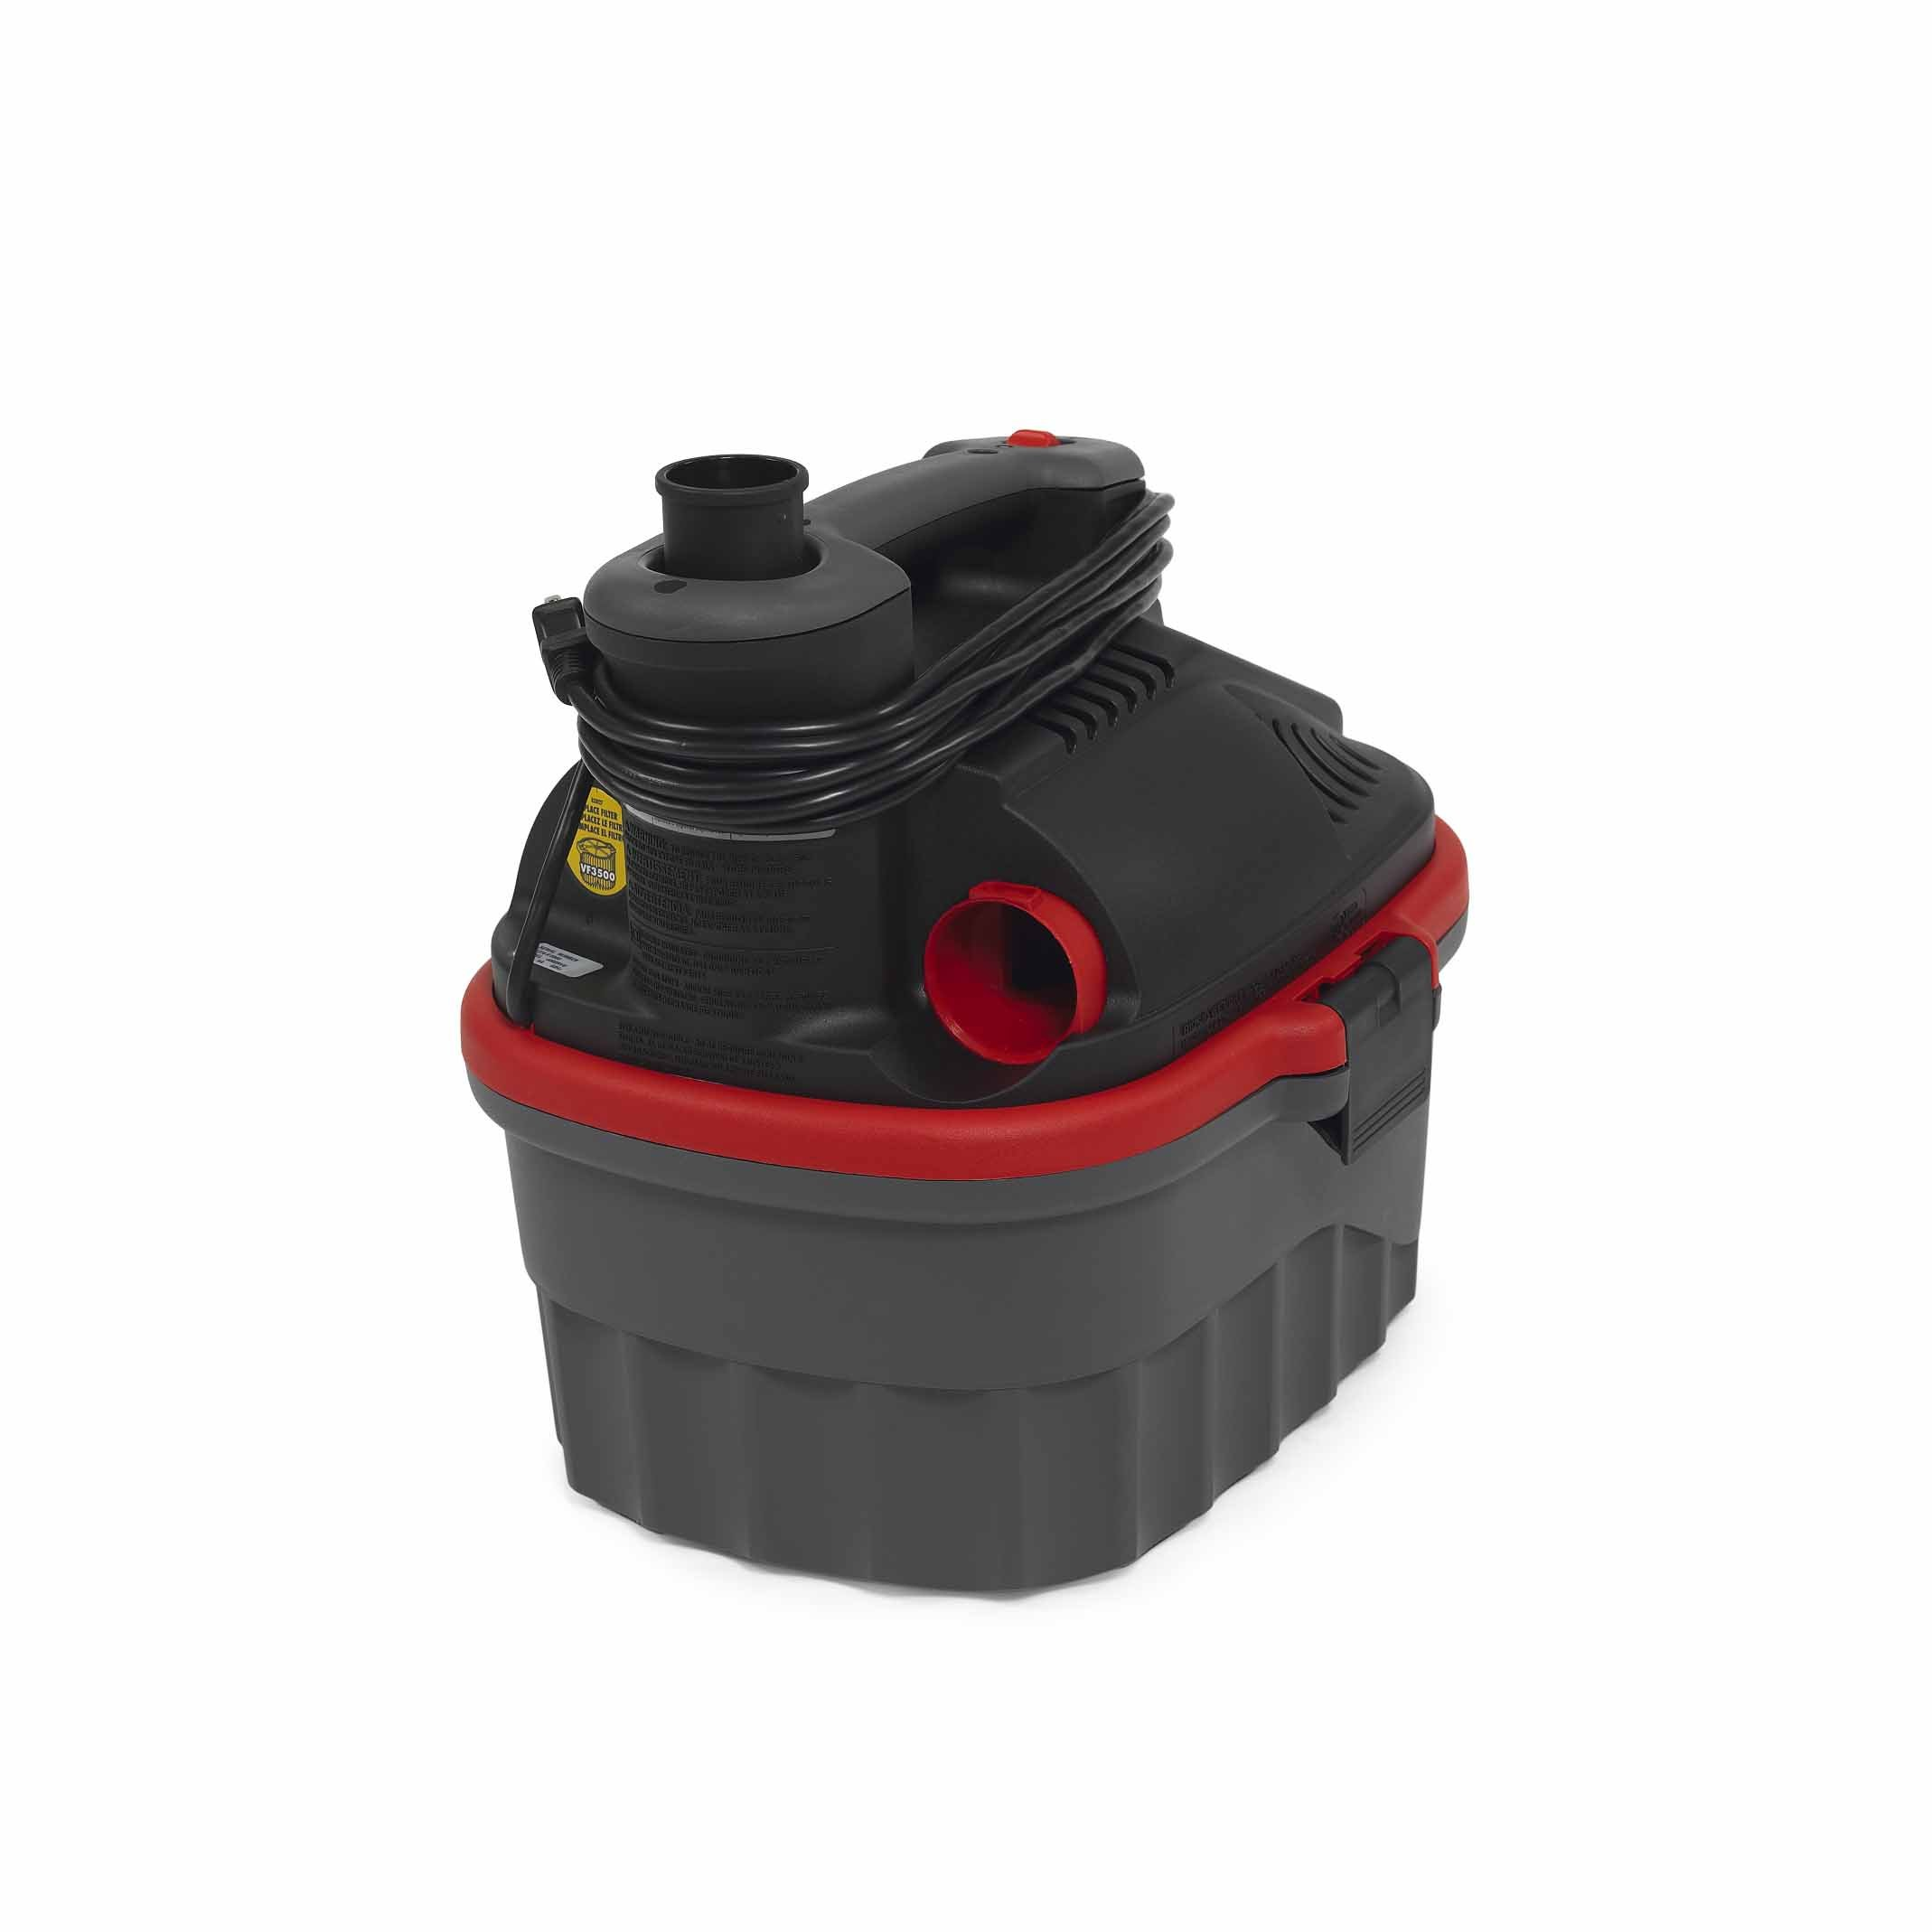 Ridgid 50313 4000RV Wet/Dry Vacuum, 4 gal, Red by Ridgid (Image #4)